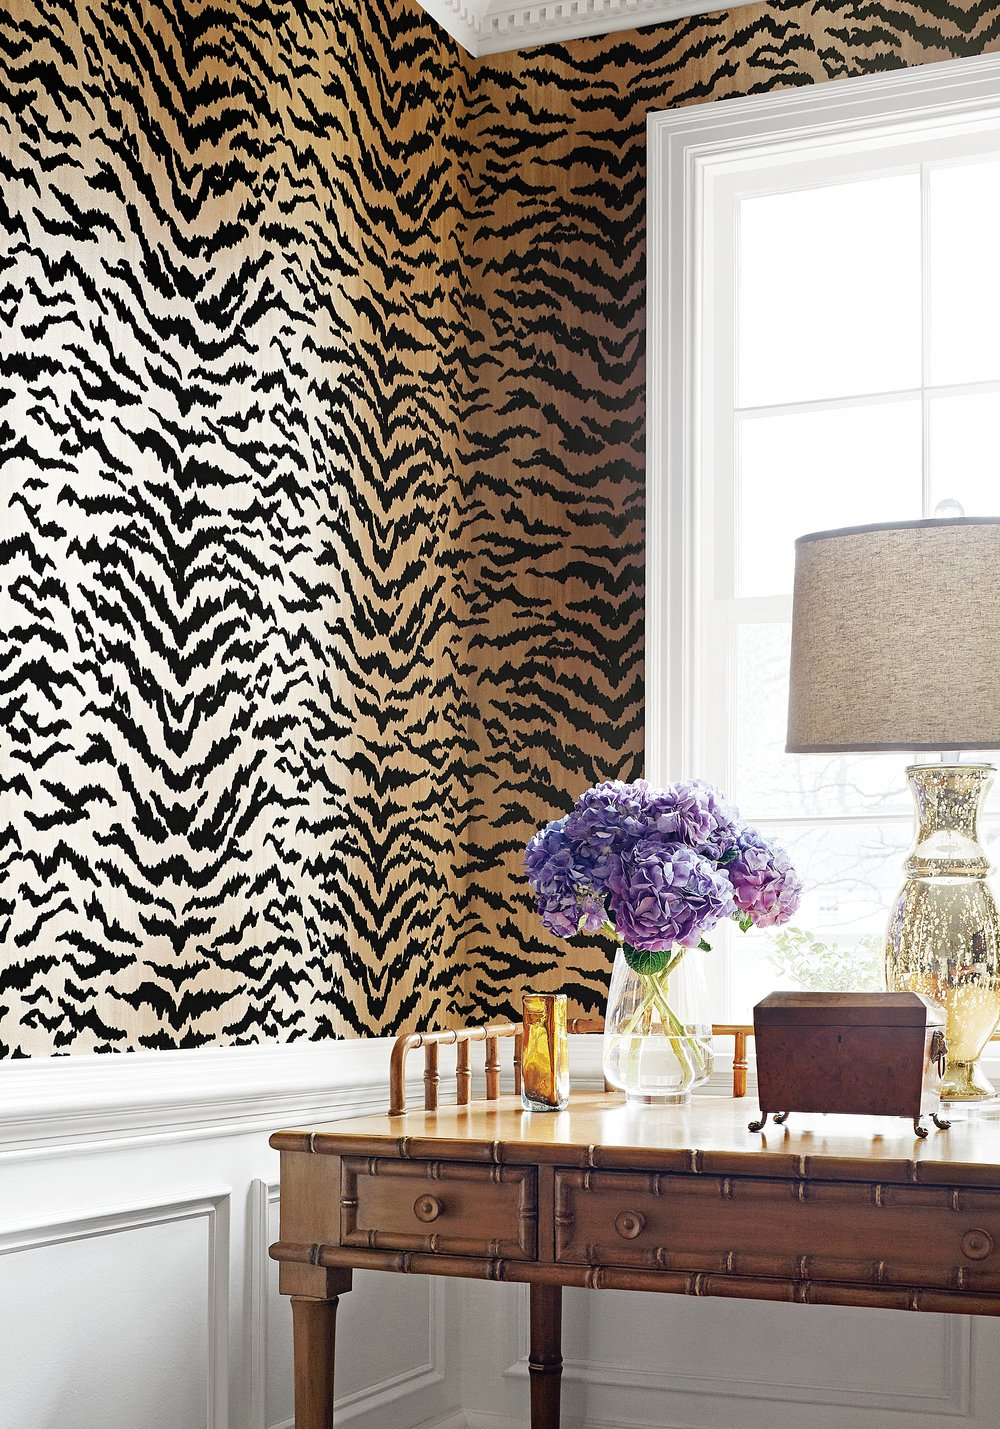 incorporating a print from one of our feline jungle friends brings bold and biting style to any space, while still soft and feminine.